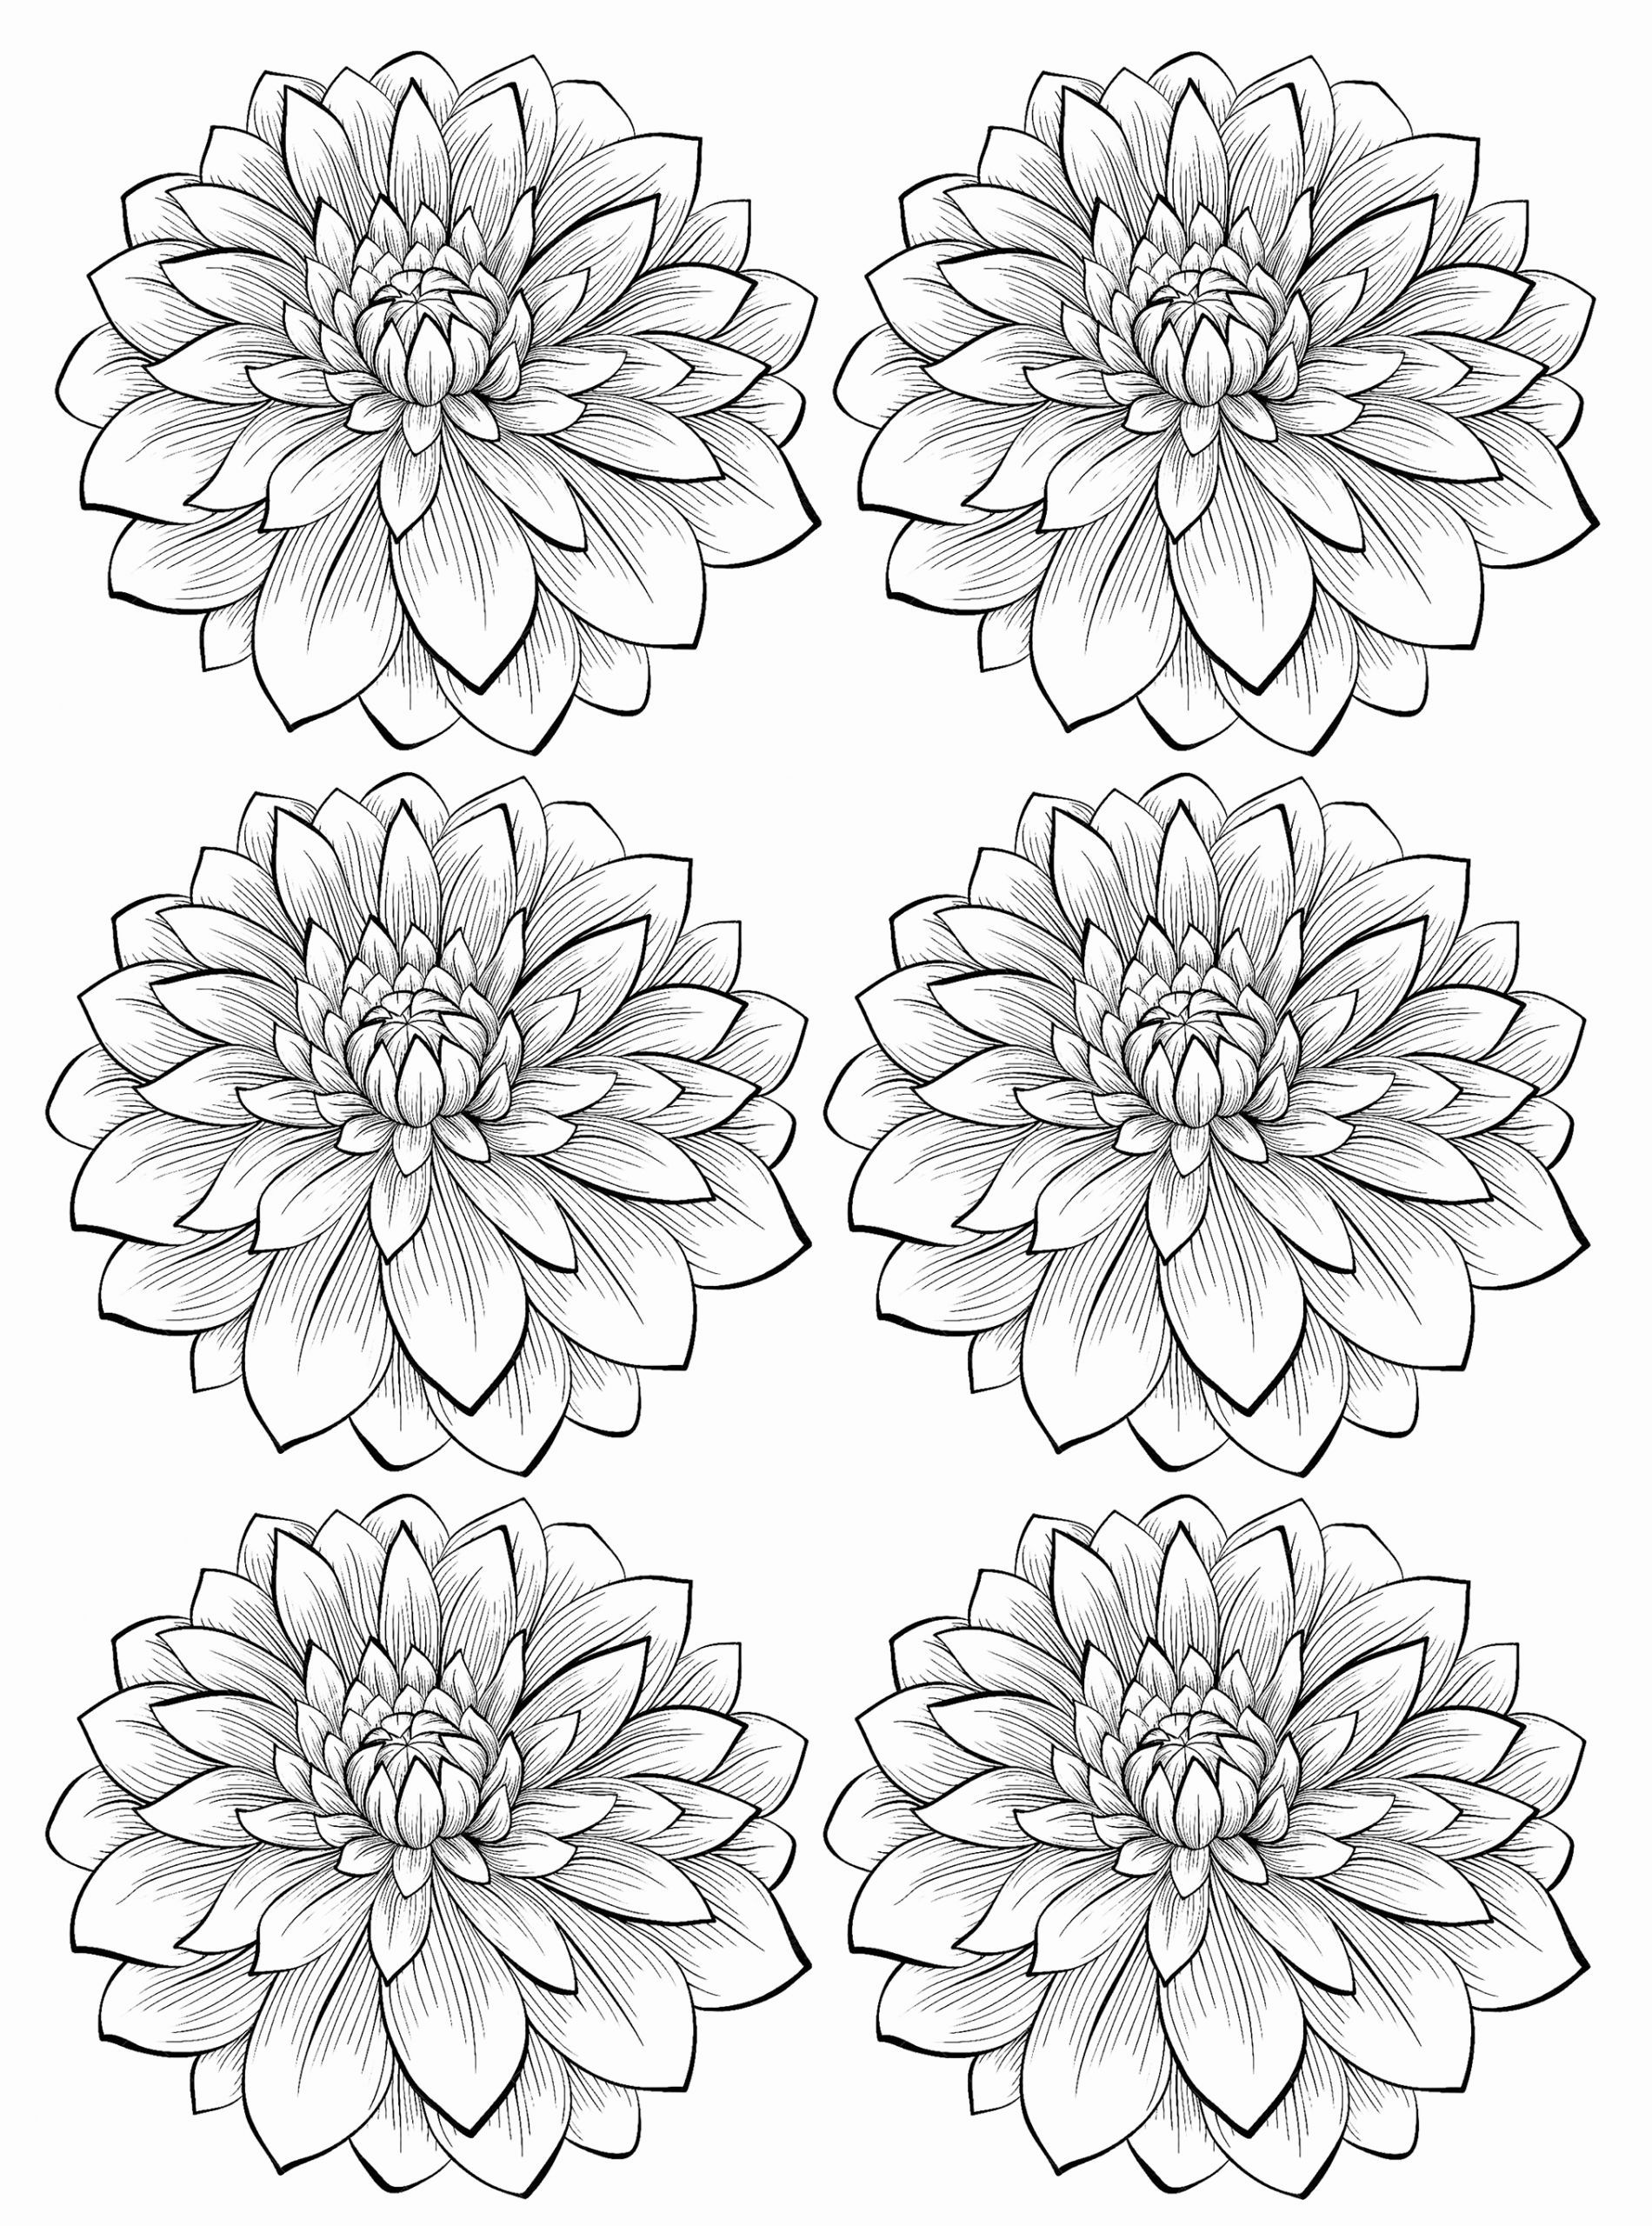 Adult Coloring Pages Flowers Inspirational Six Dahlia Flower